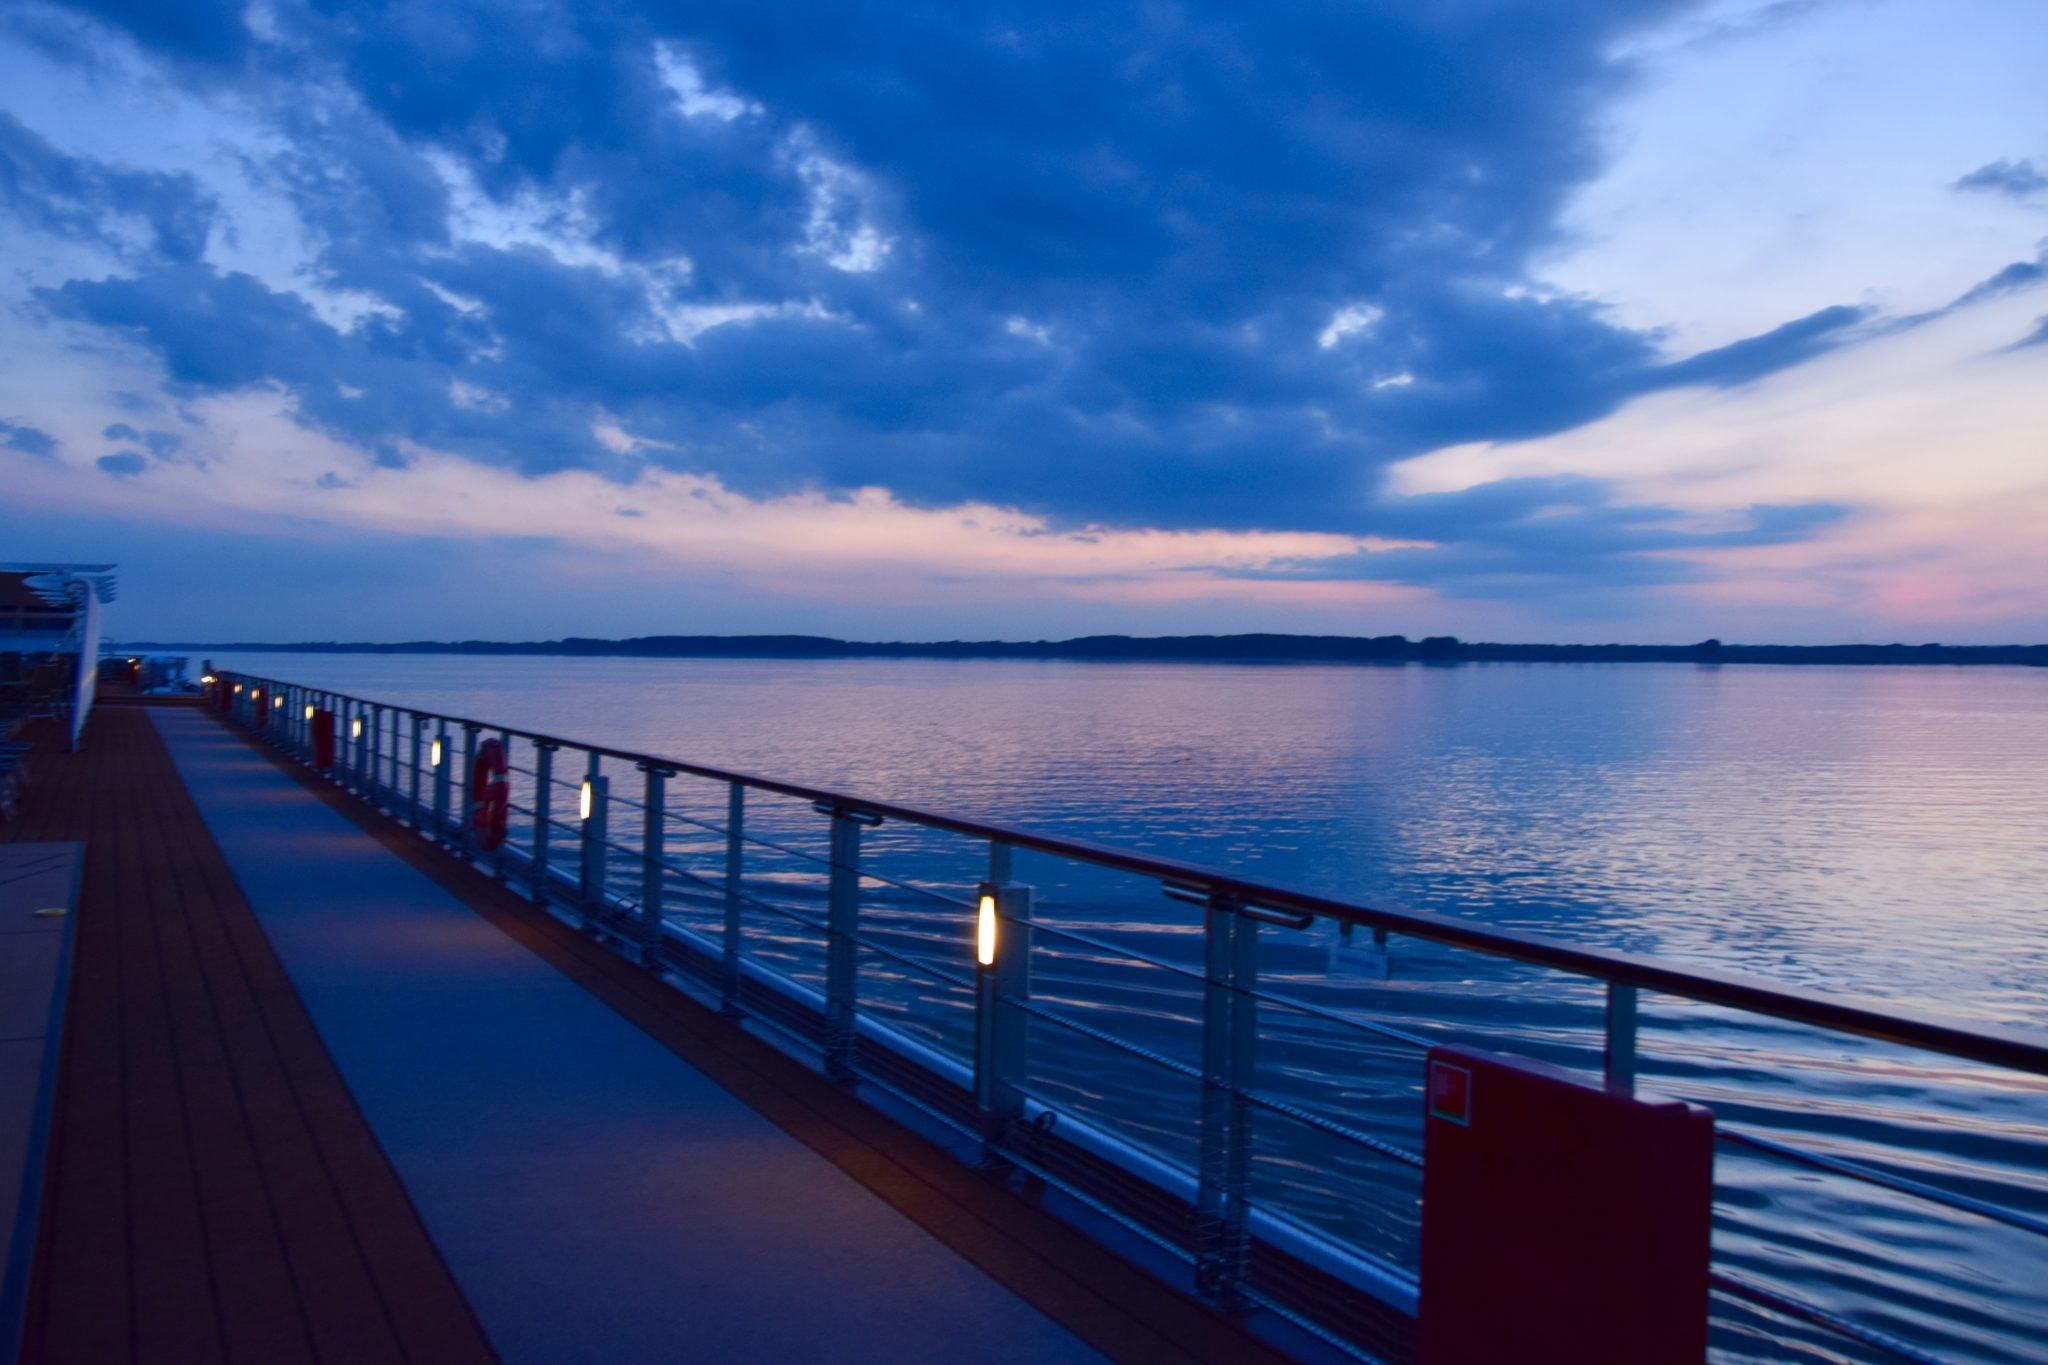 Converting A Reluctant Cruiser With Viking River Cruises - Viking danube river cruise